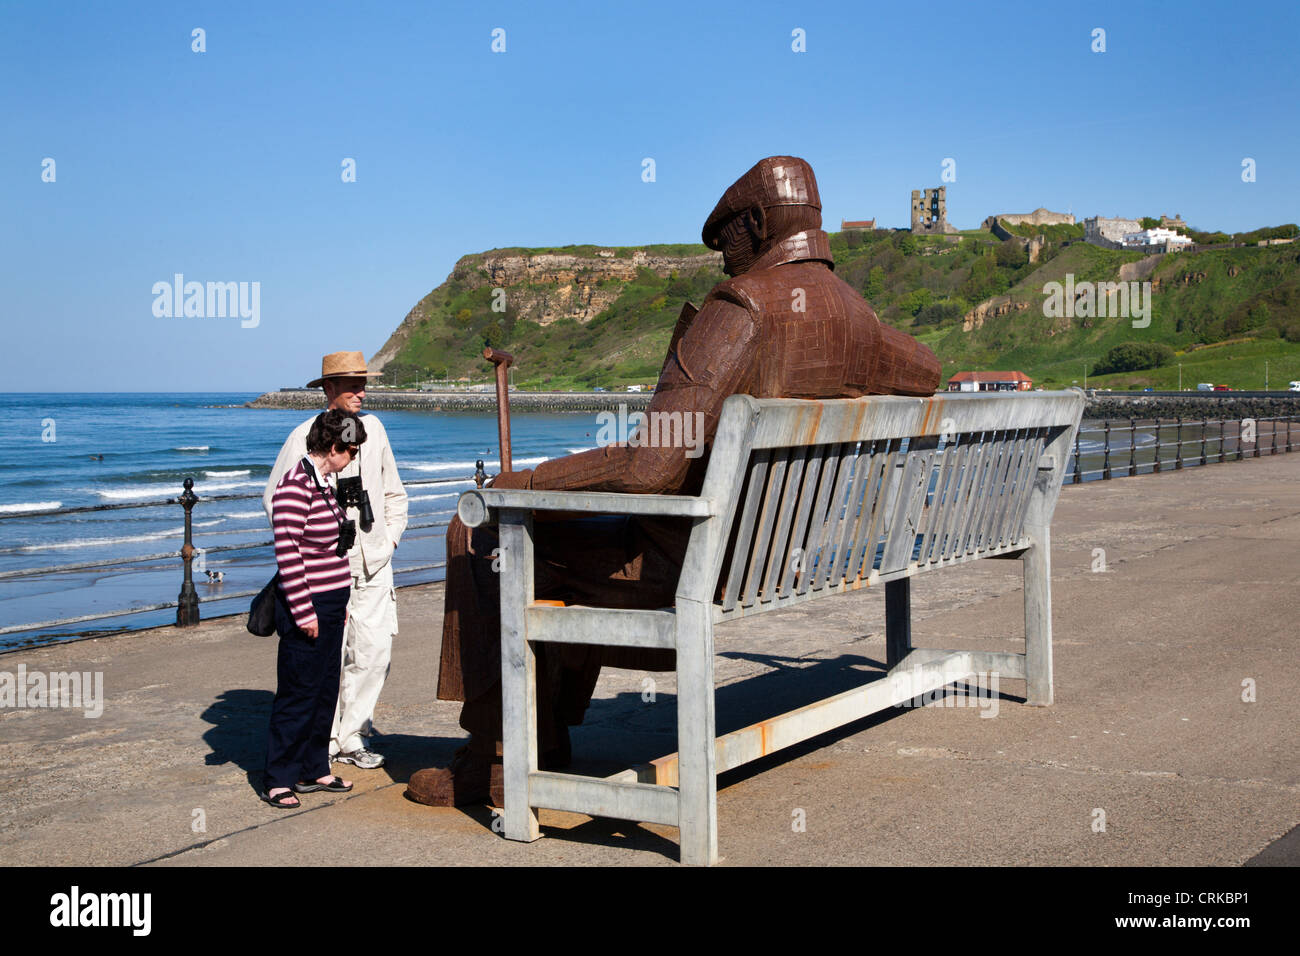 Ray Lonsdale Sculpture of a Man on a Bench in North Bay Scarborough North Yorkshire England - Stock Image